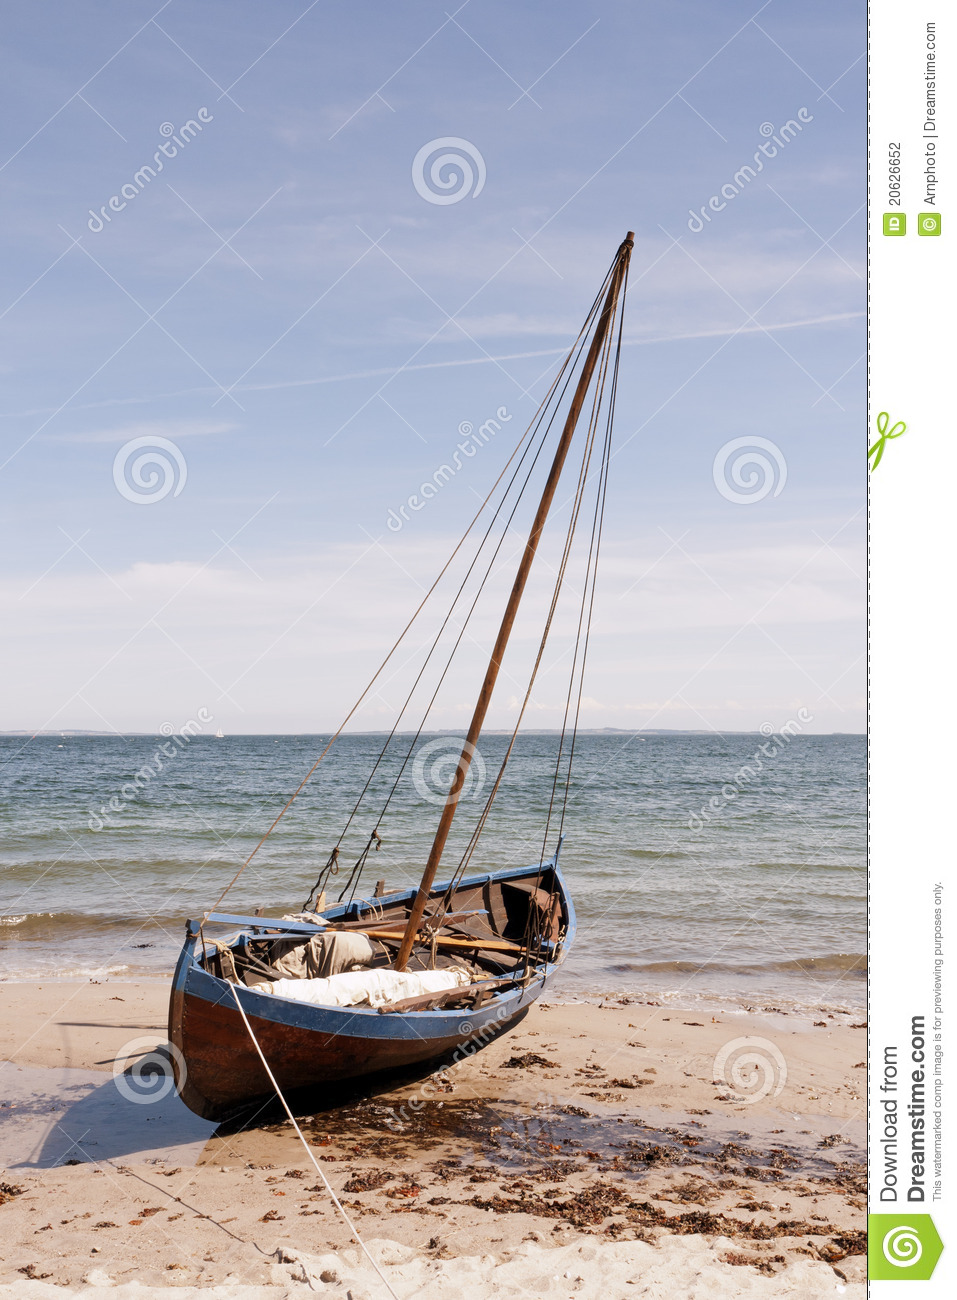 Boat On The Beach Stock Photography - Image: 20626652